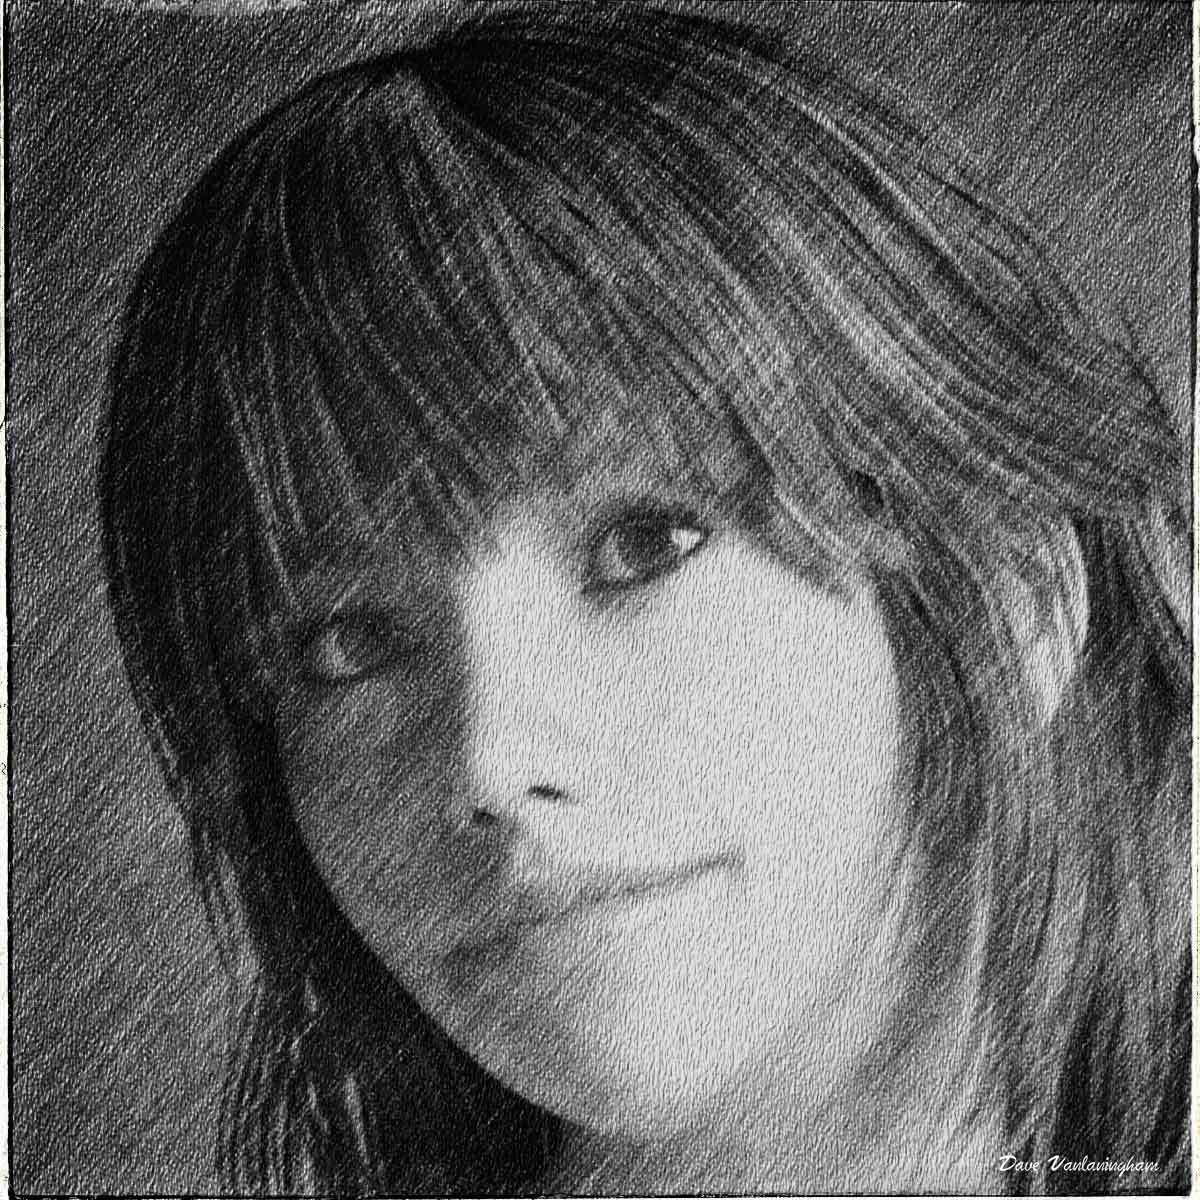 Portrait in pencil by vlgraphics